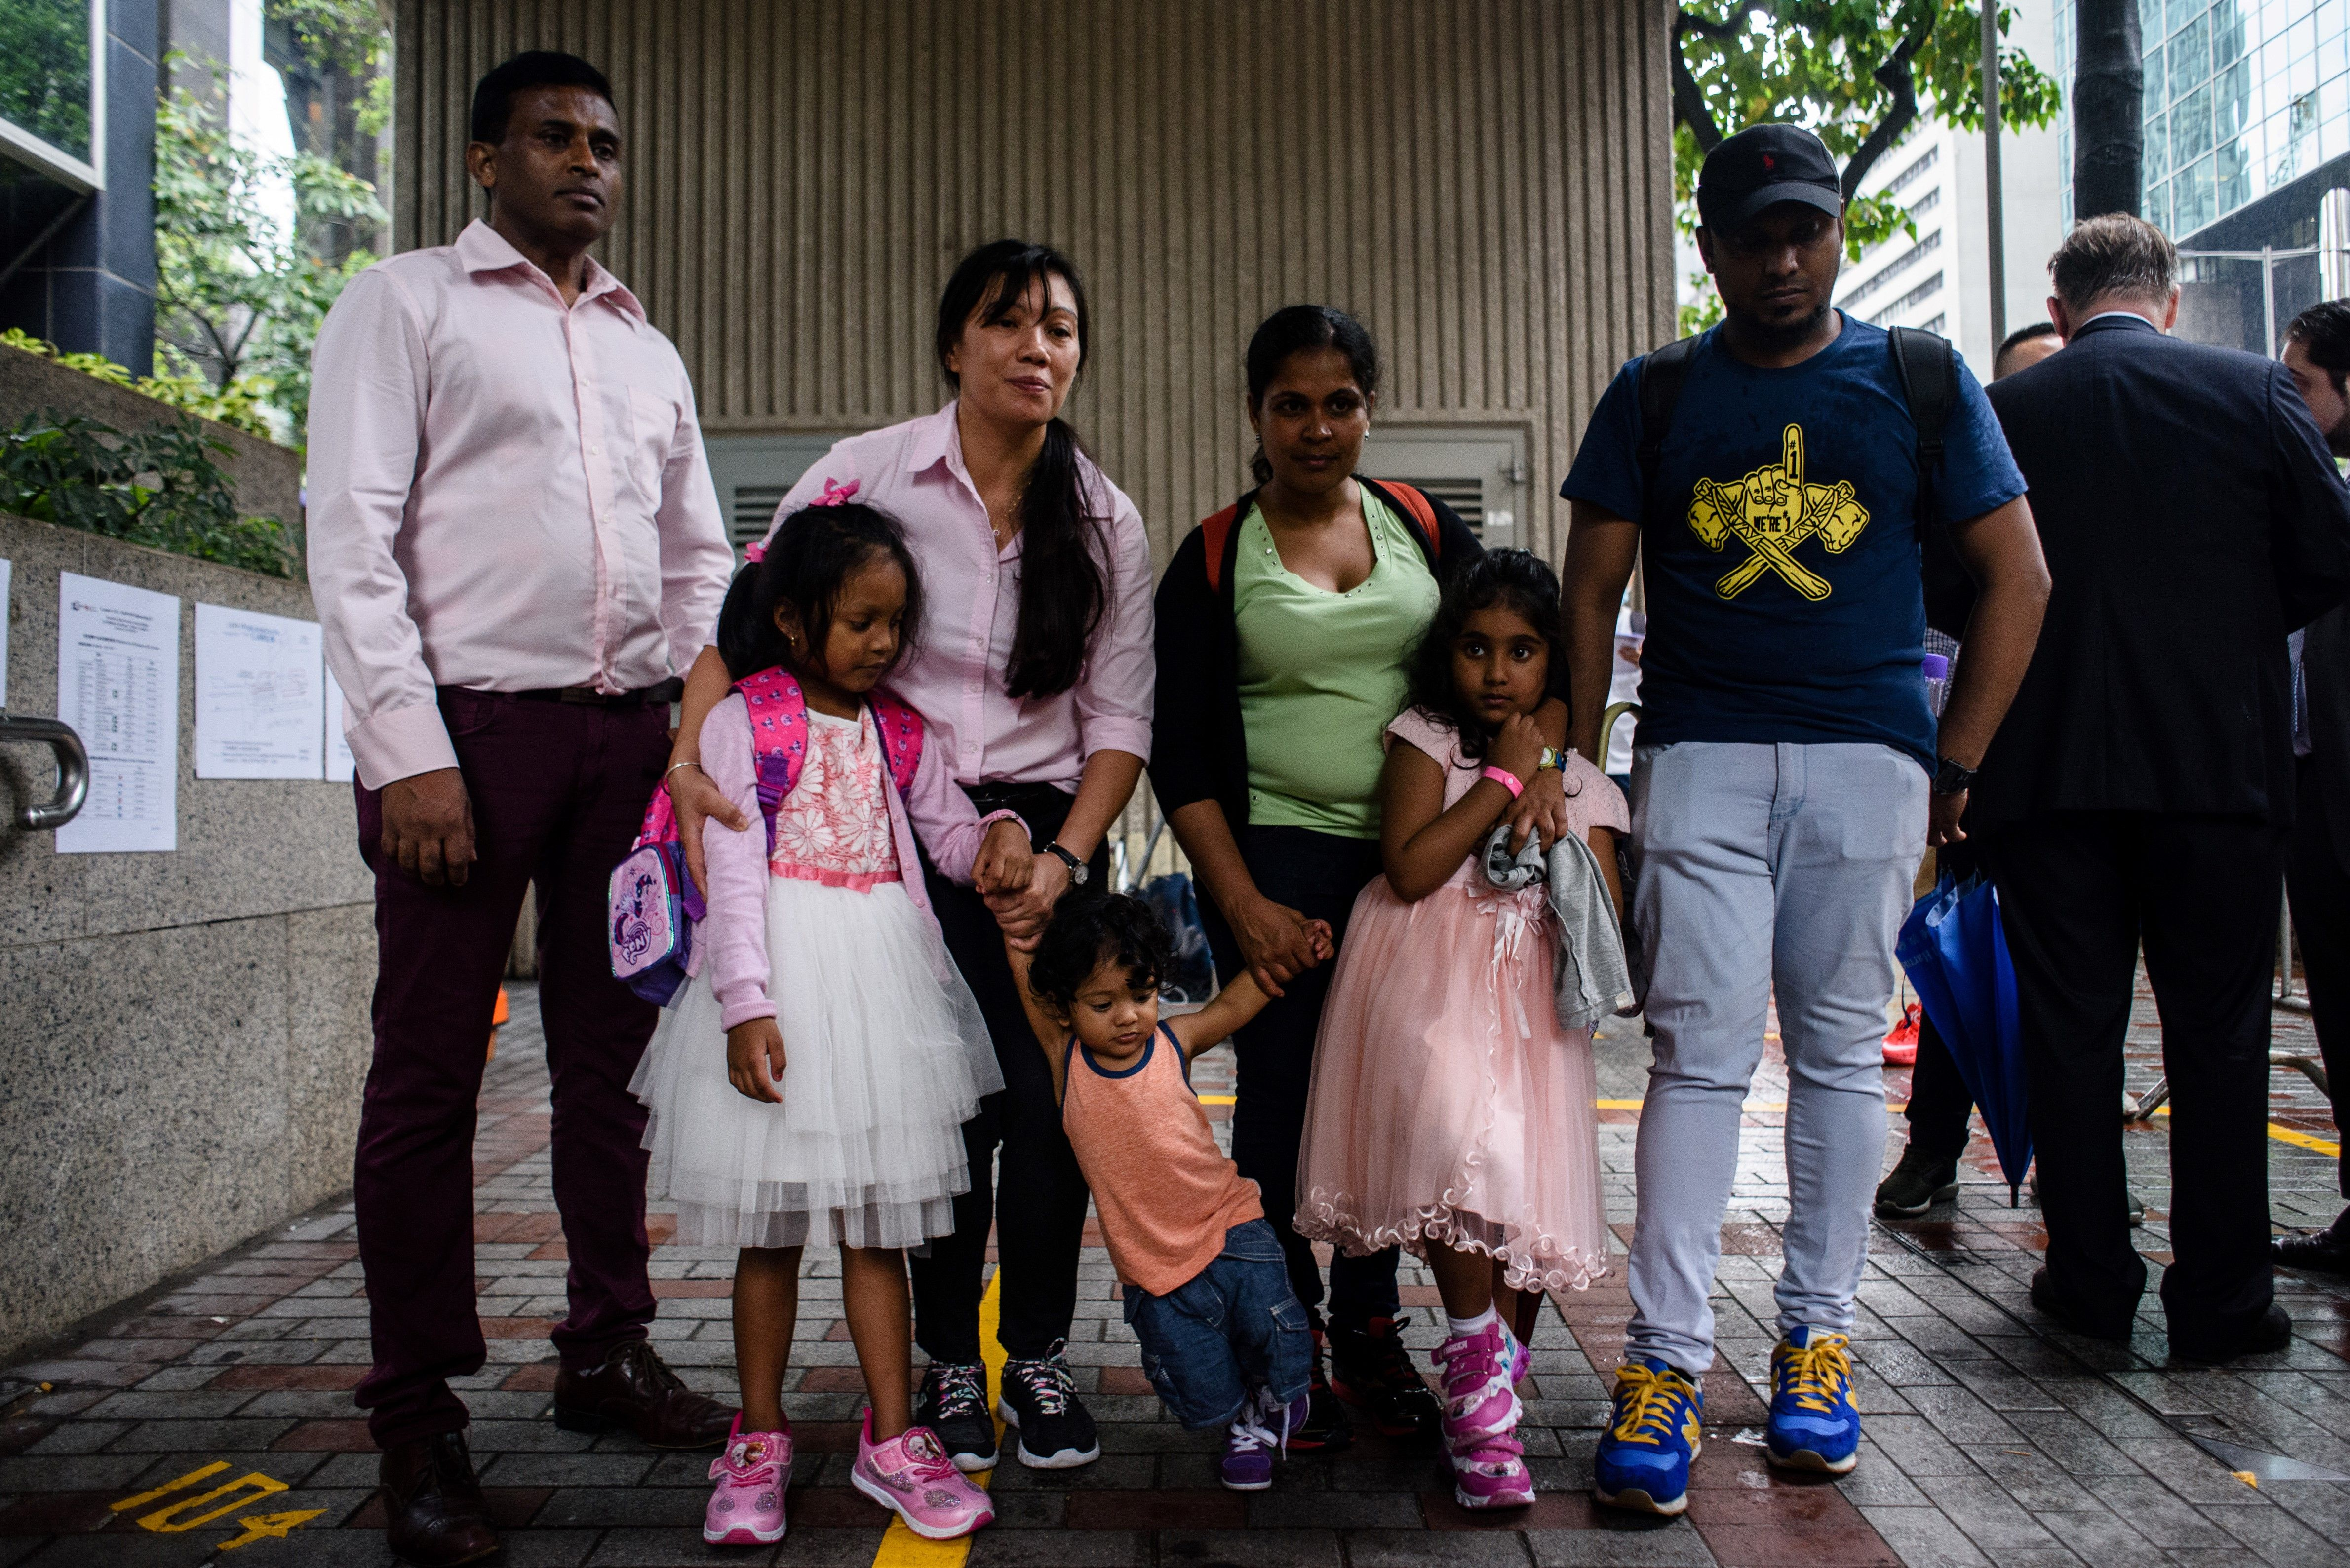 Sri Lankan refugee Ajith Puspa (back L), Filipino refugee Vanessa Rodel (back 2nd L), her daughter Keana (front L), Sri Lankan refugee Nadeeka (back 3rd L), her partner Supun Thilina Kellapatha and their children, son Danath (front C) and daughter Sethumdi (front R), outside the Immigration Tower in Hong Kong, May 15, 2017.